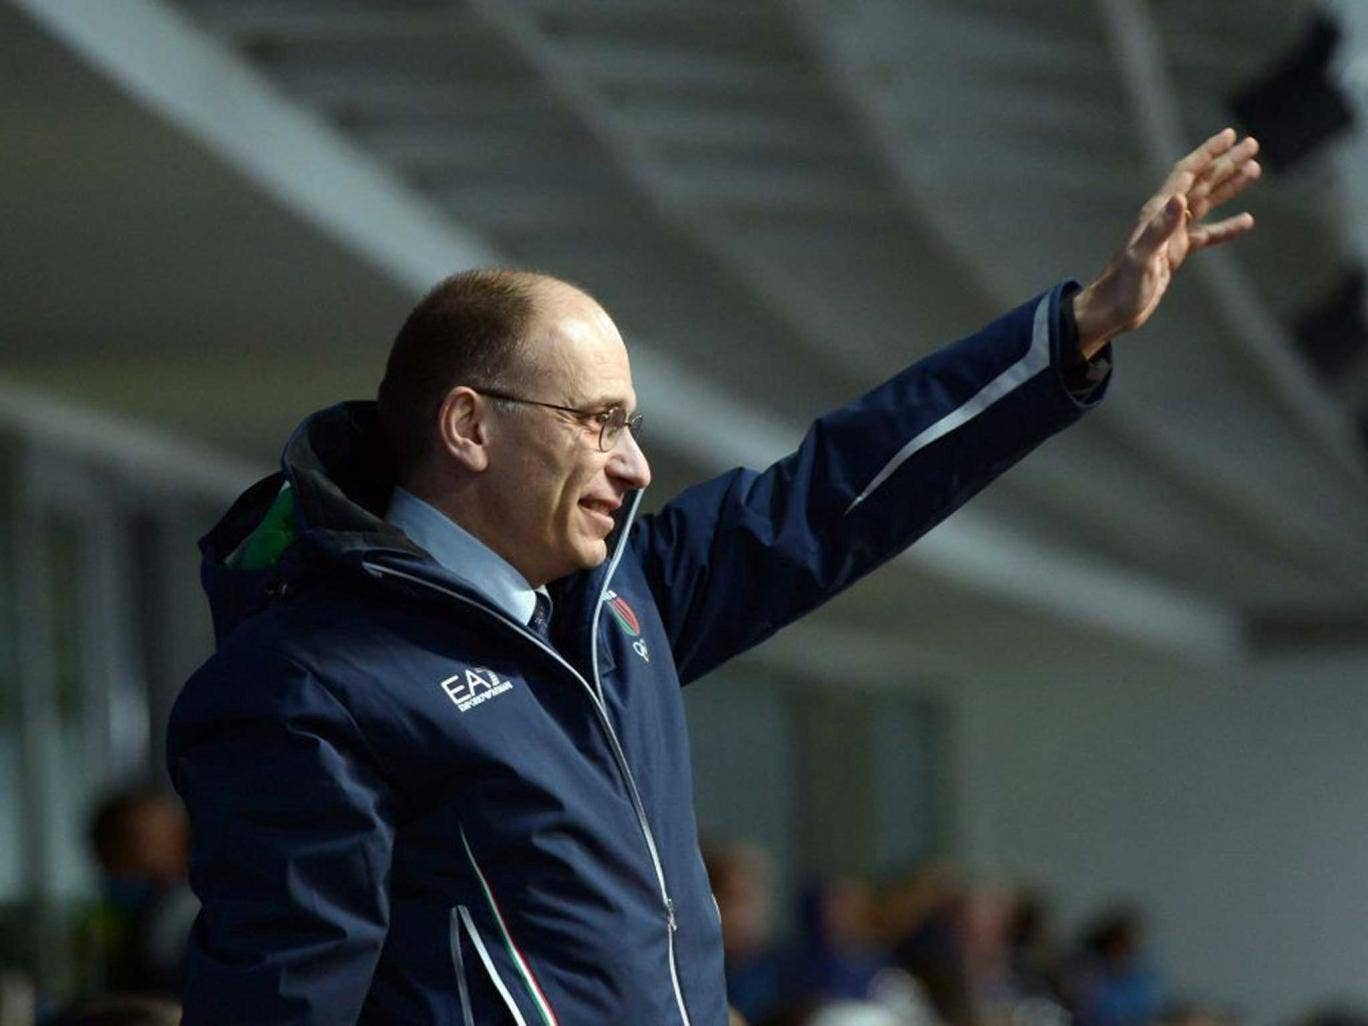 Enrico Letta at the Winter Games in Sochi, where he says he will press the authorities on human rights